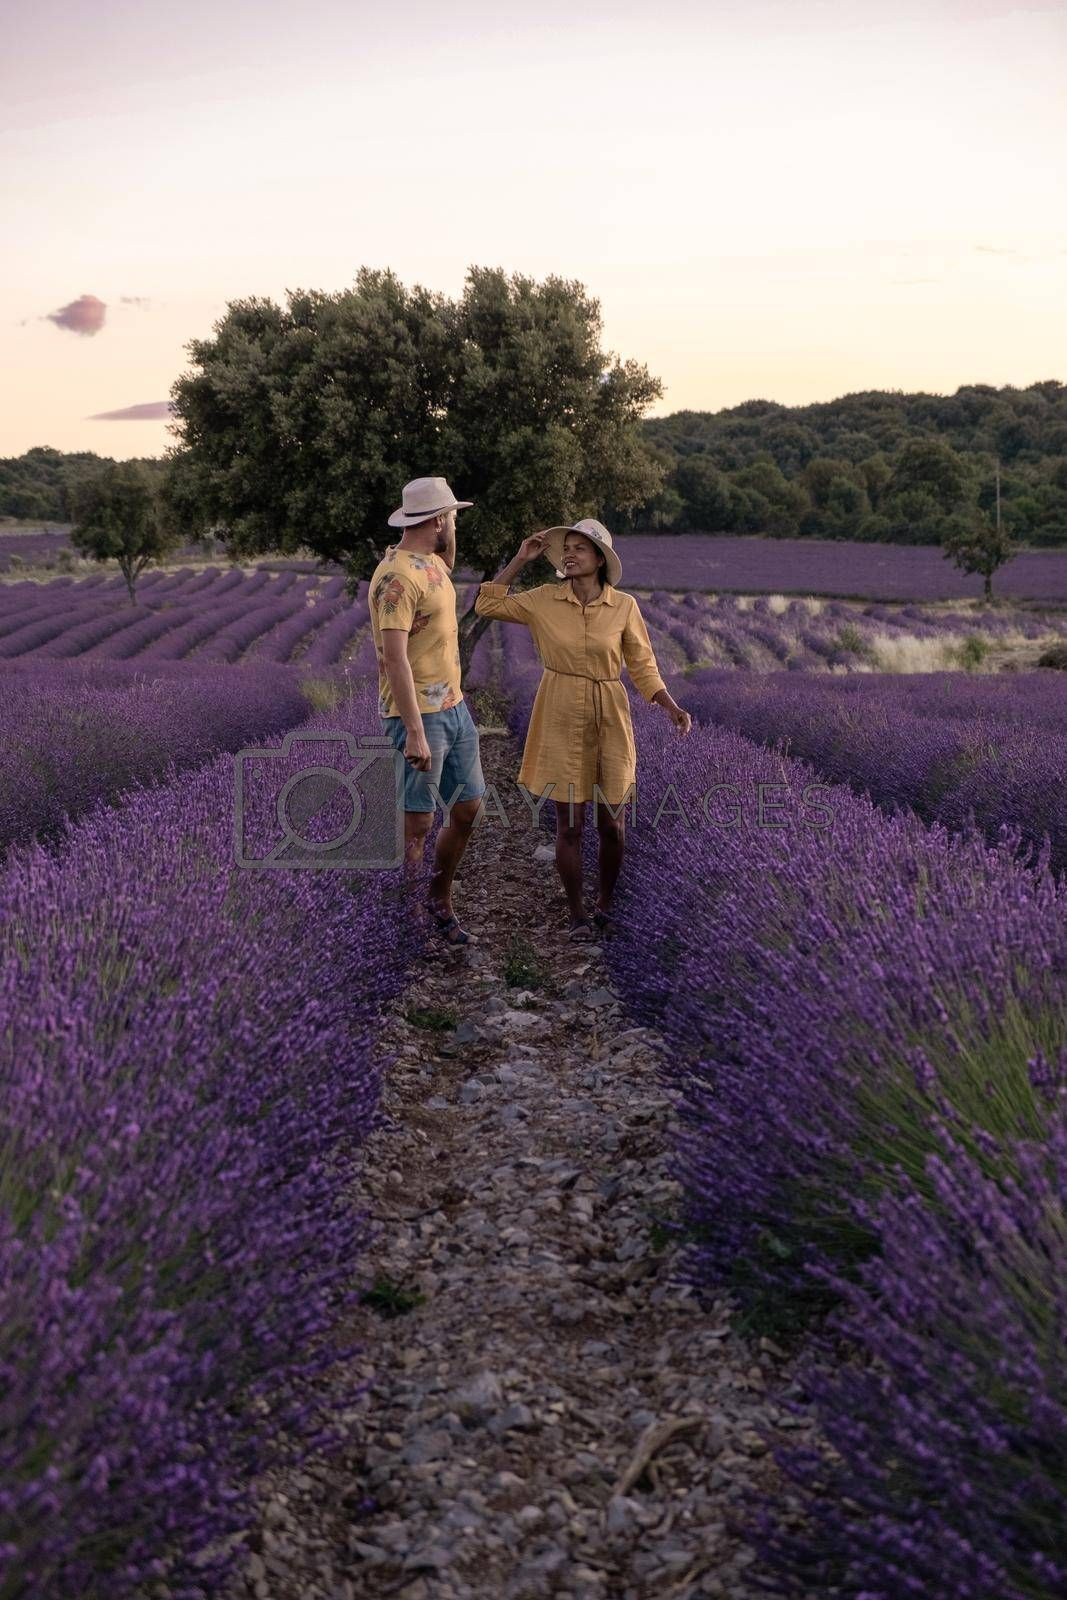 couple men and woman watching sunset in lavender fields in the south of France, Ardeche lavender fields iduring sunset, Lavender fields in Ardeche in southeast France.Europe